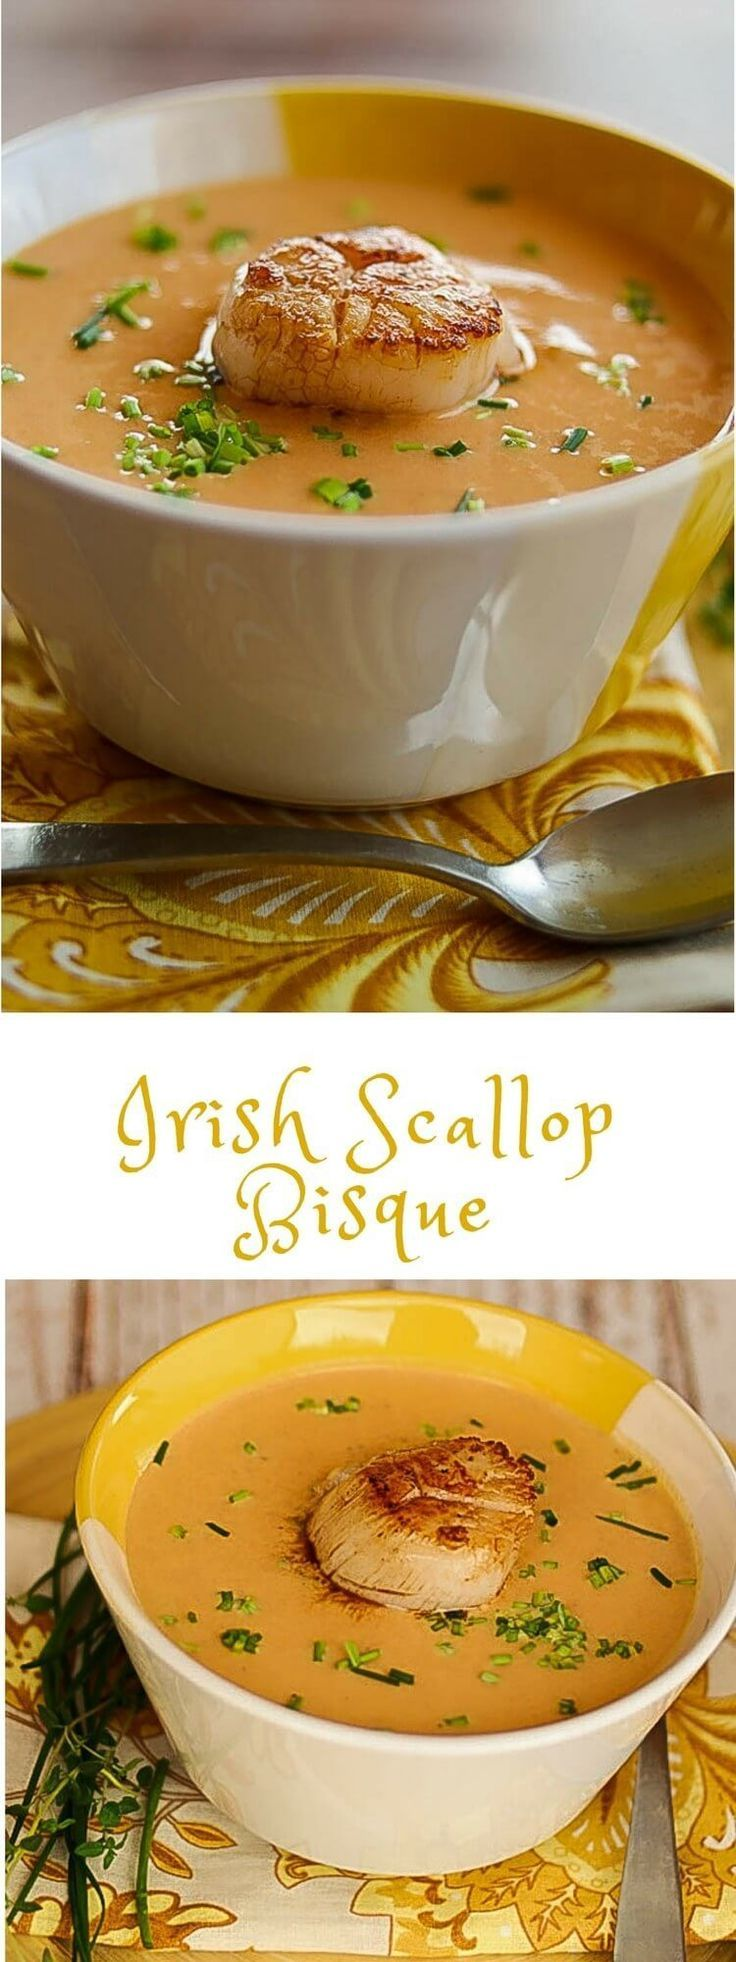 Irish Scallop Bisque - Luxurious flavors abound in this creamy bisque! It's perfect as an elegant starter course, or a light main course with bread and a salad... Scallop bisque recipe | Bisque | seafood soups | starter courses